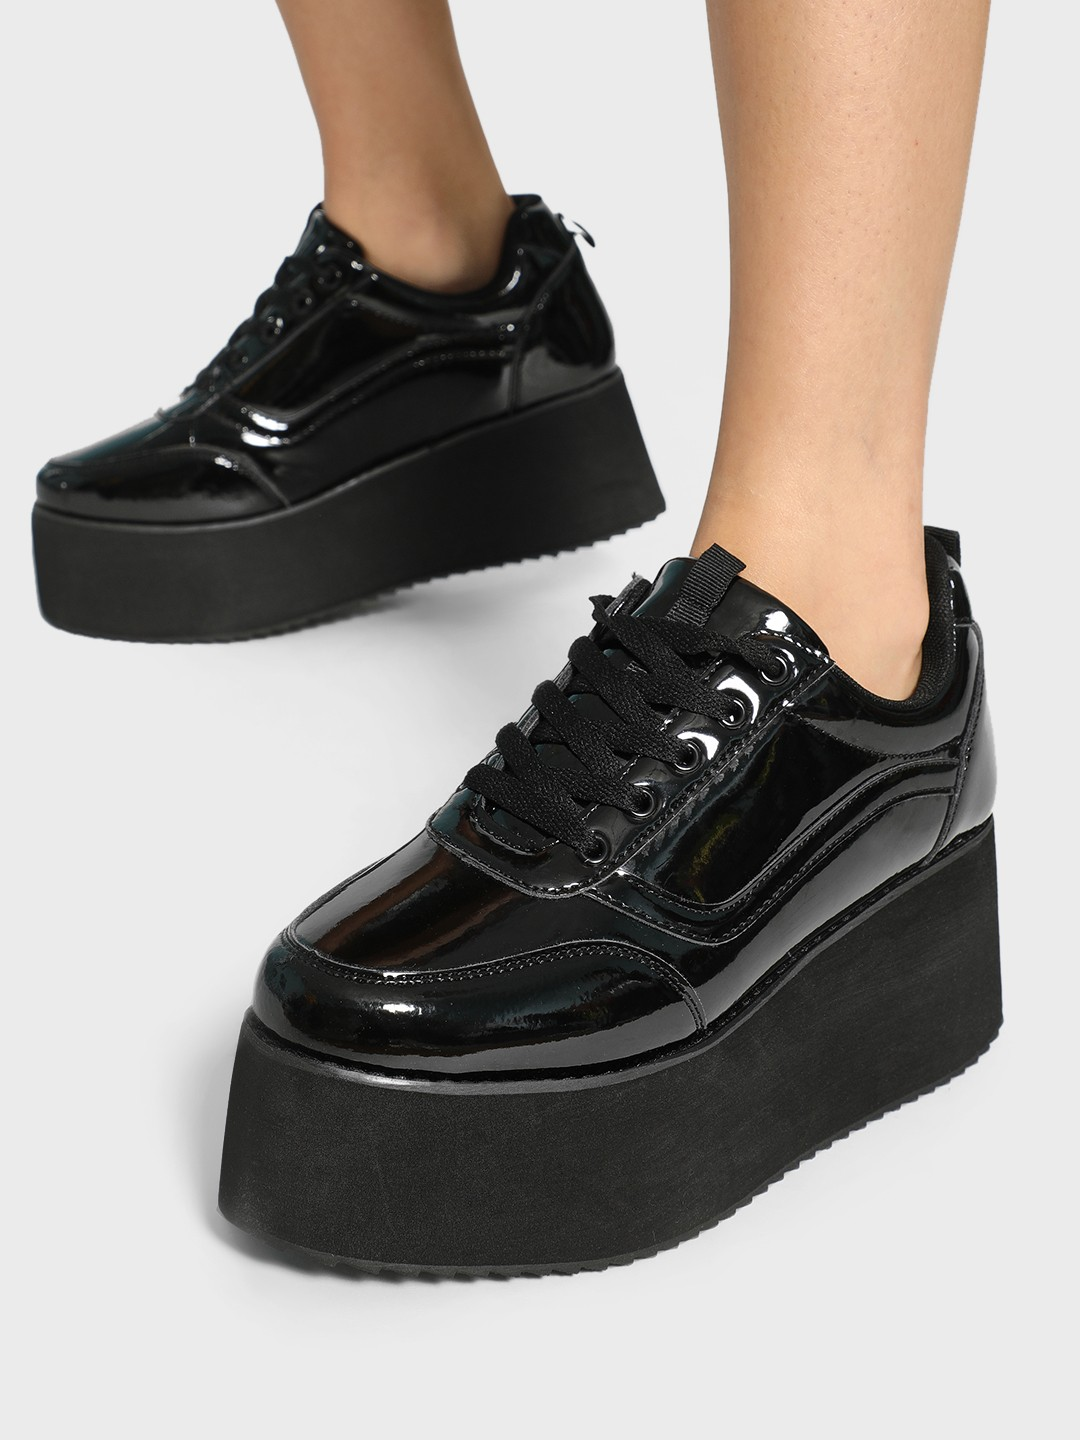 Truffle Collection Black Patent Flatform Sneakers 1